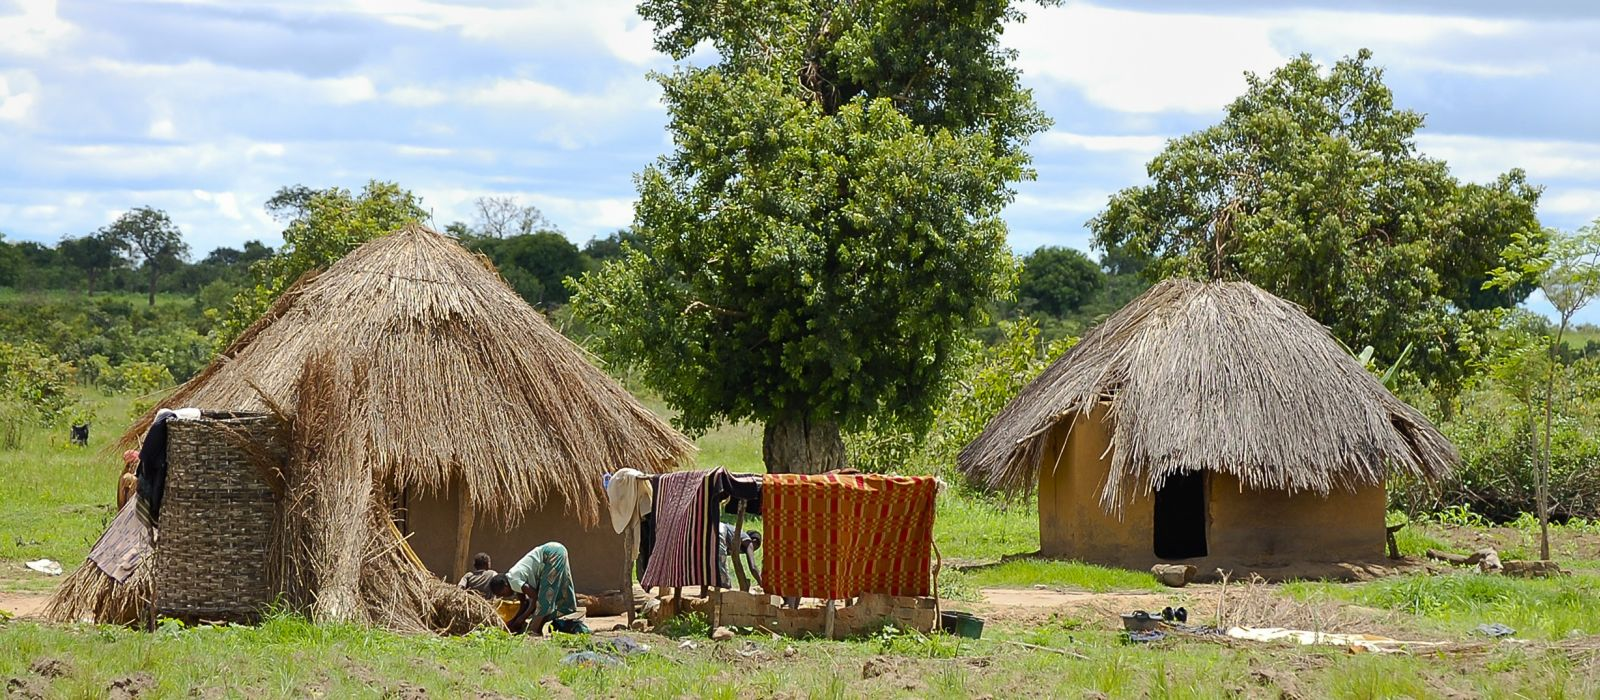 Culture of Zambia - village huts